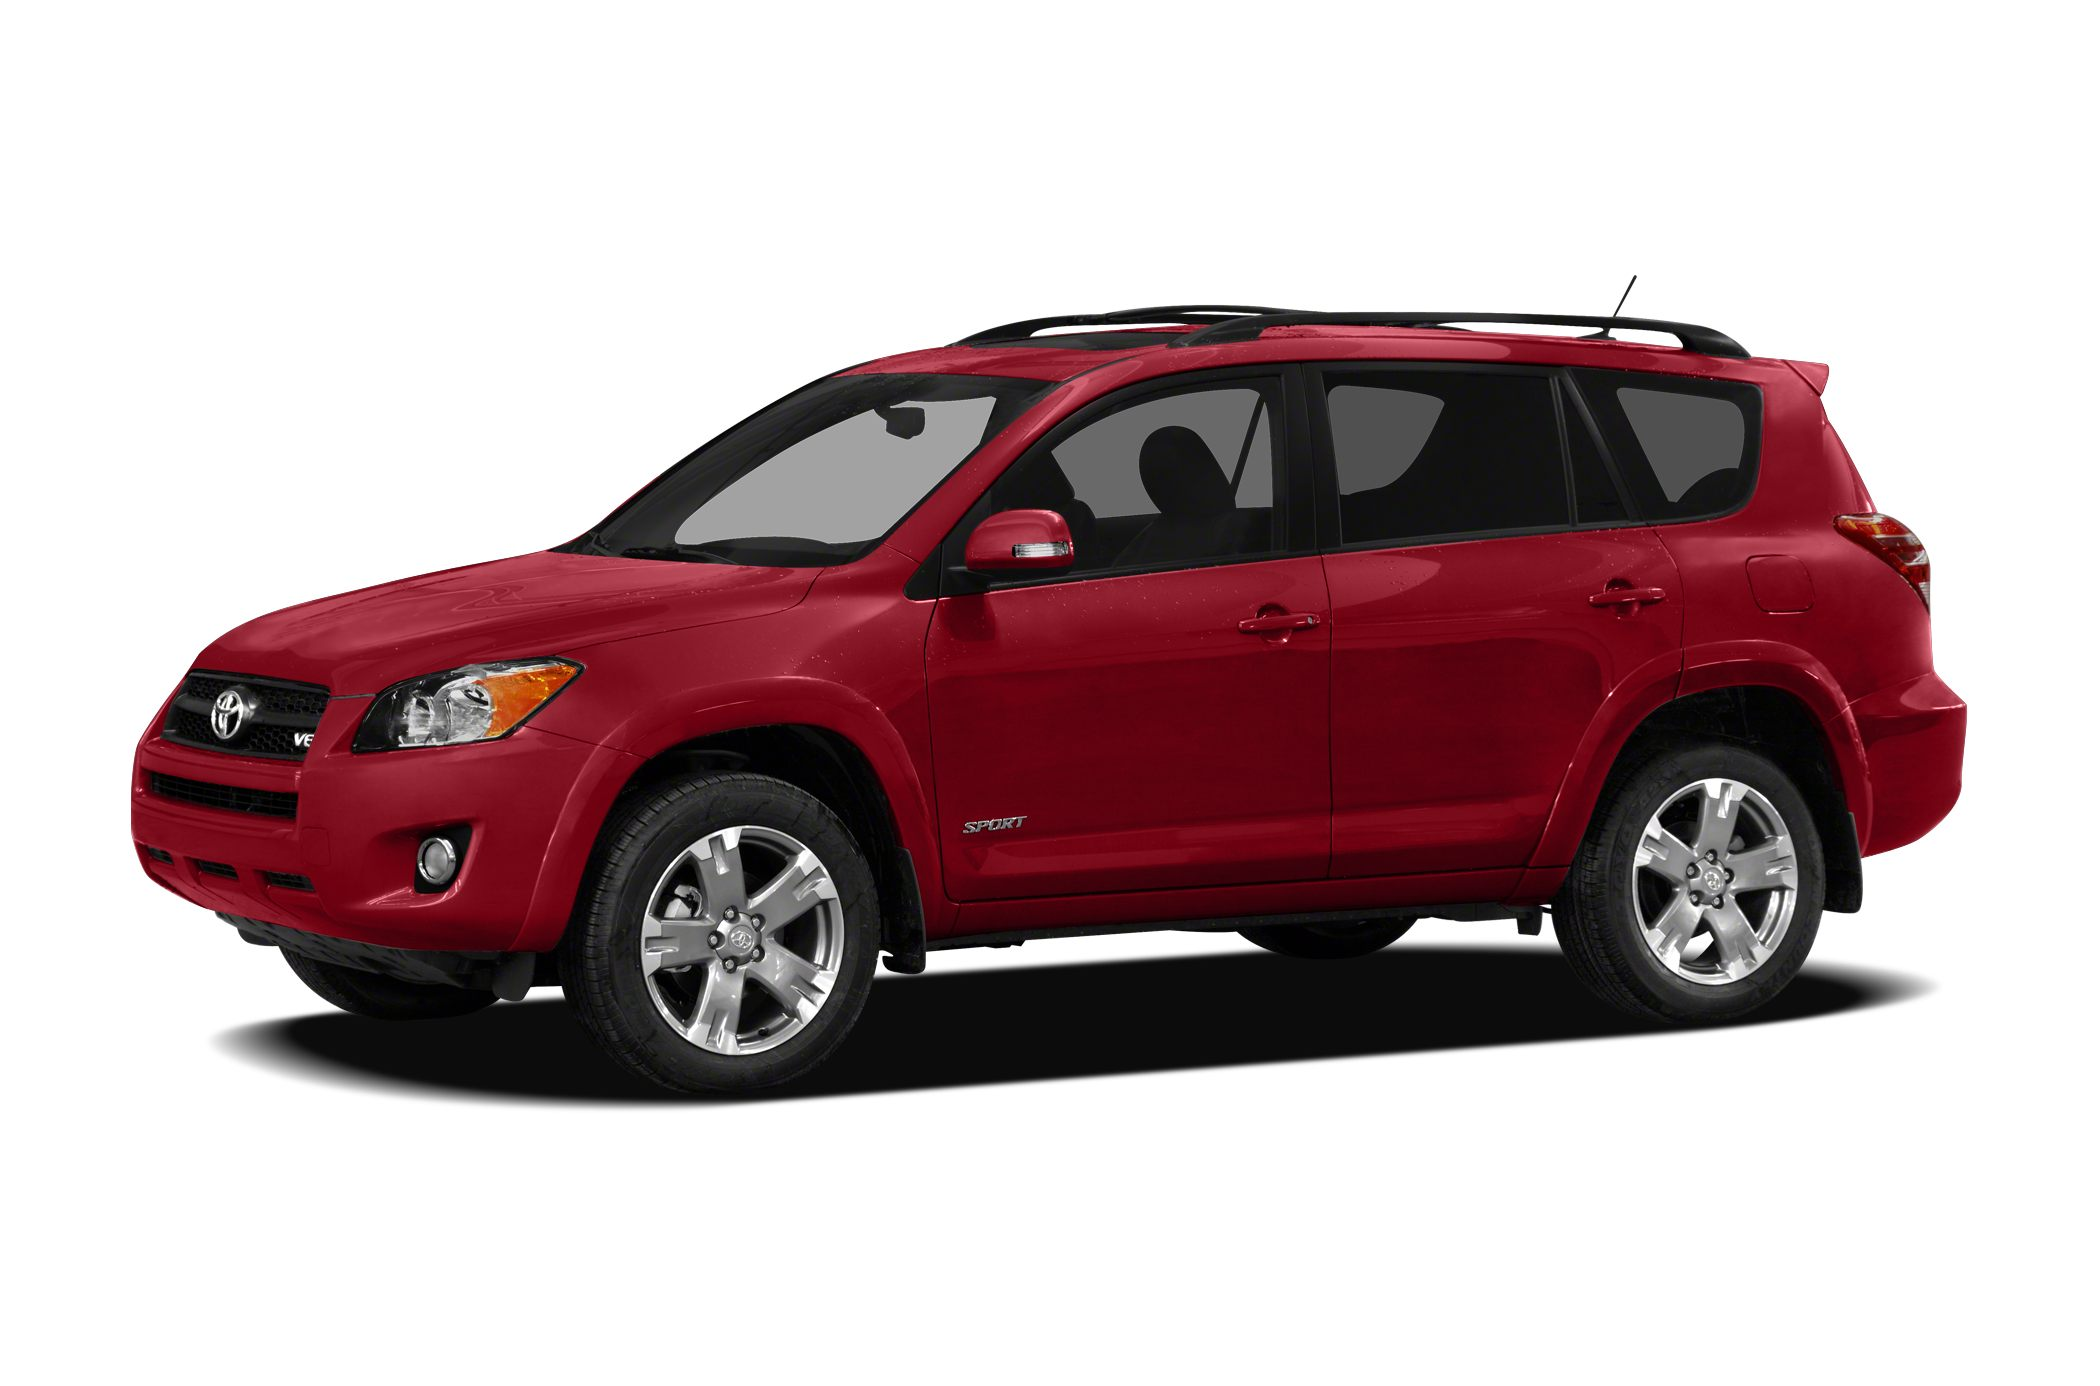 2011 Toyota RAV4 Base SUV for sale in Savannah for $17,991 with 53,357 miles.